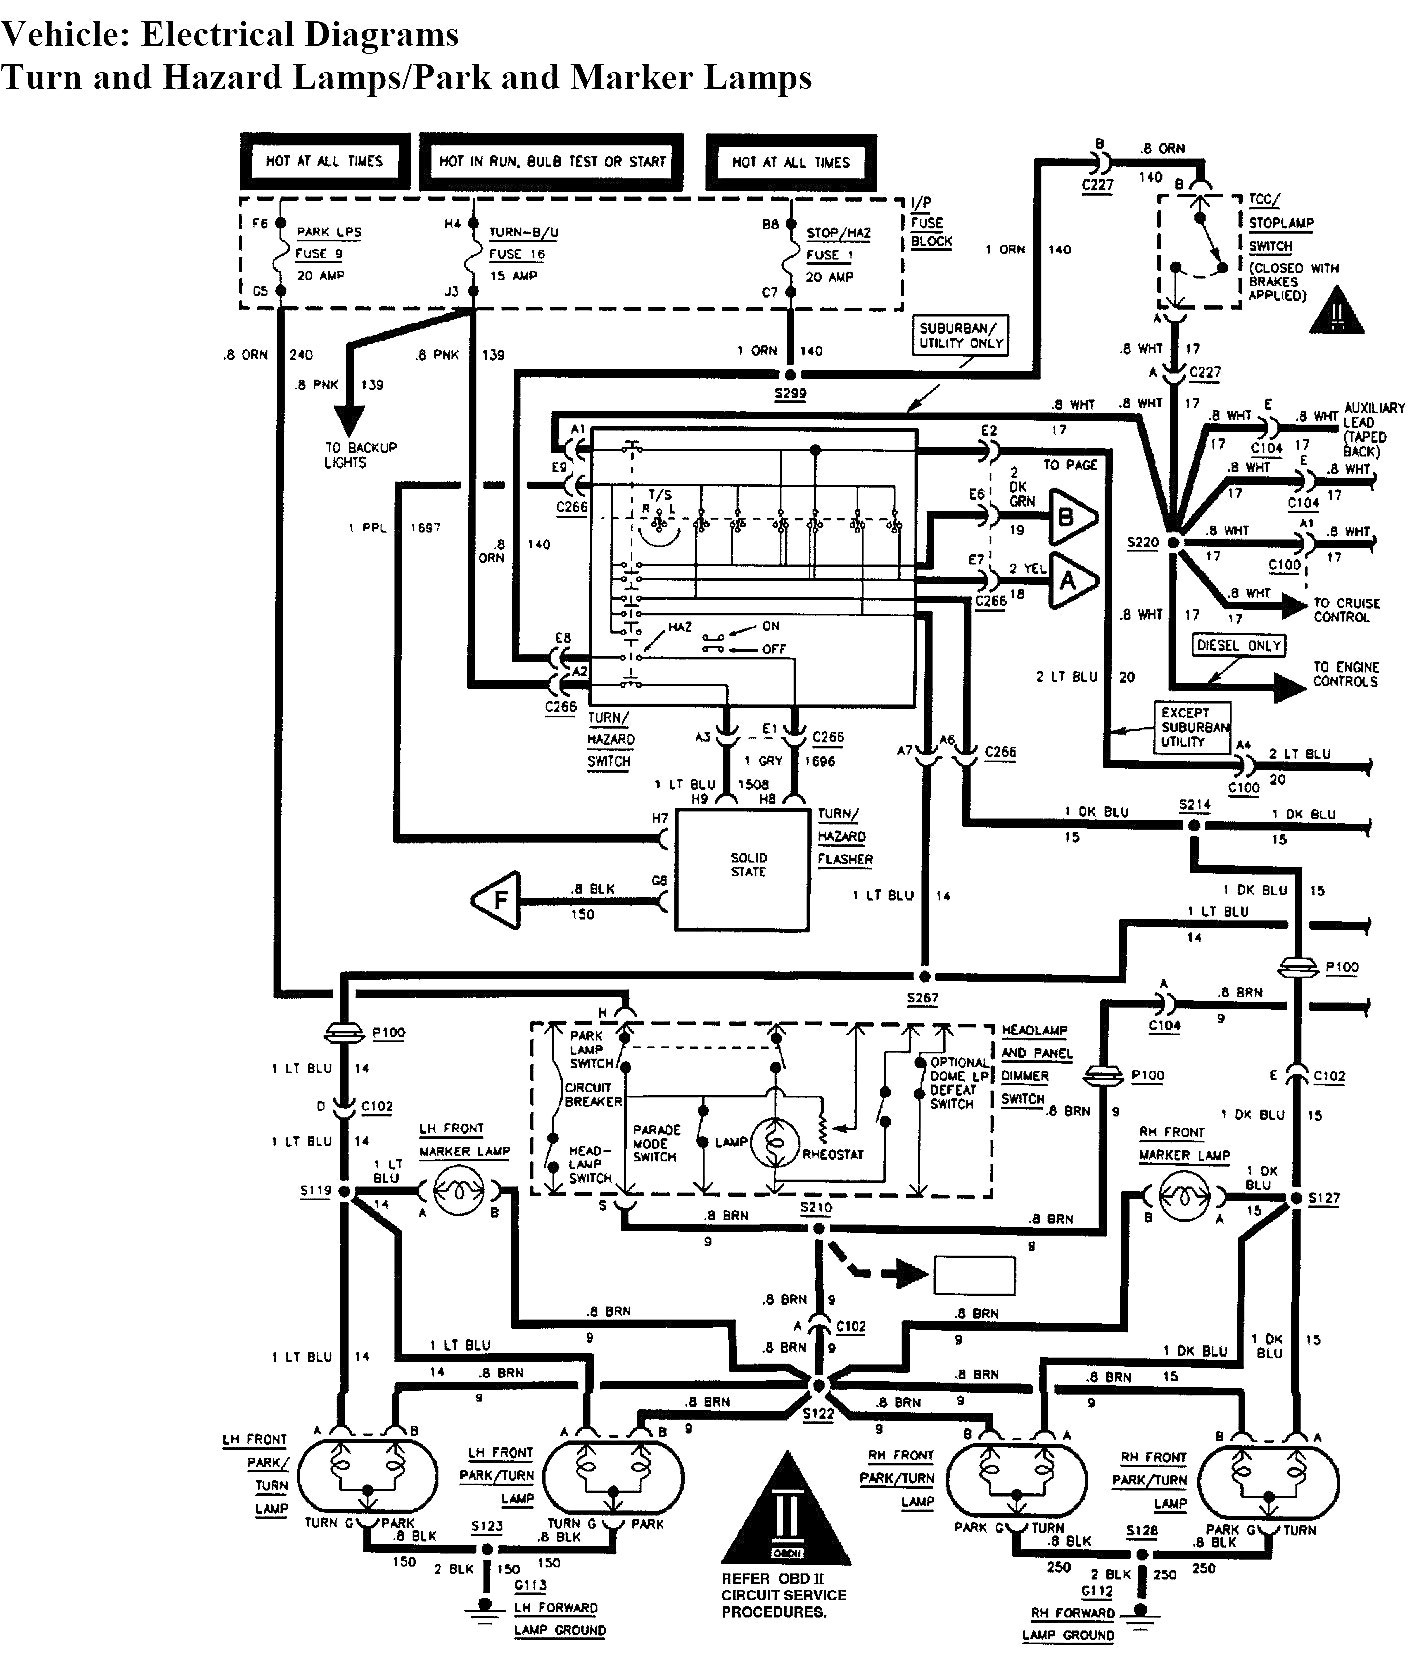 Windshield Water Pump Wiring Diagram 2000 Gmc Yukon